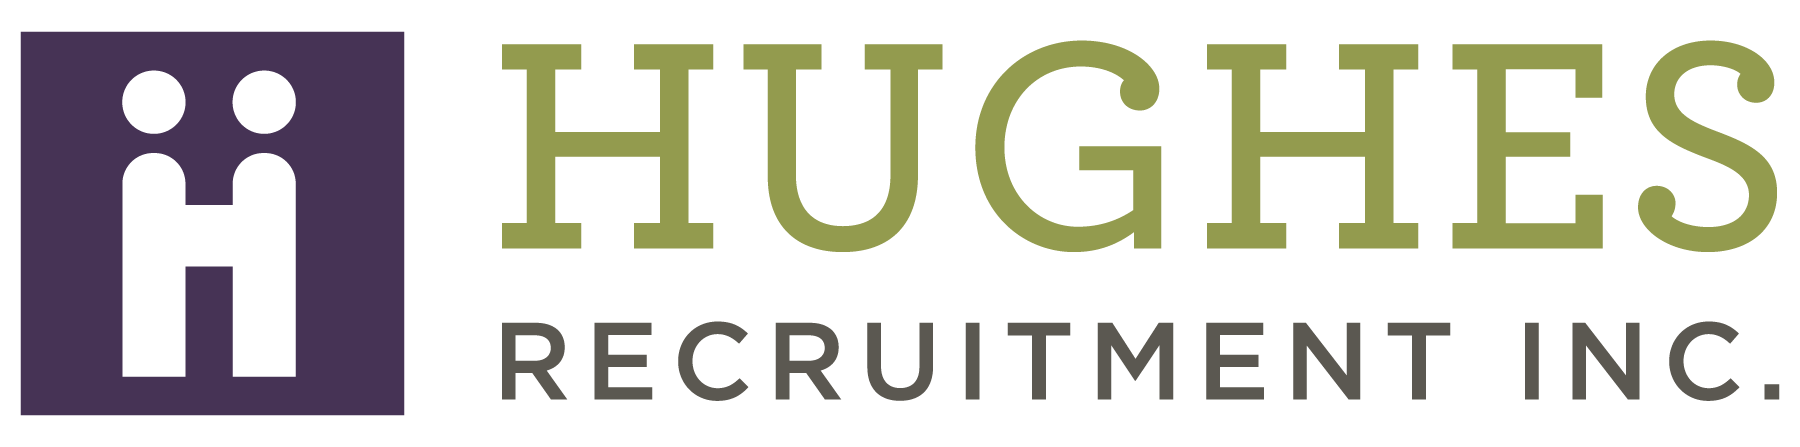 Hughes Recruitment Inc.